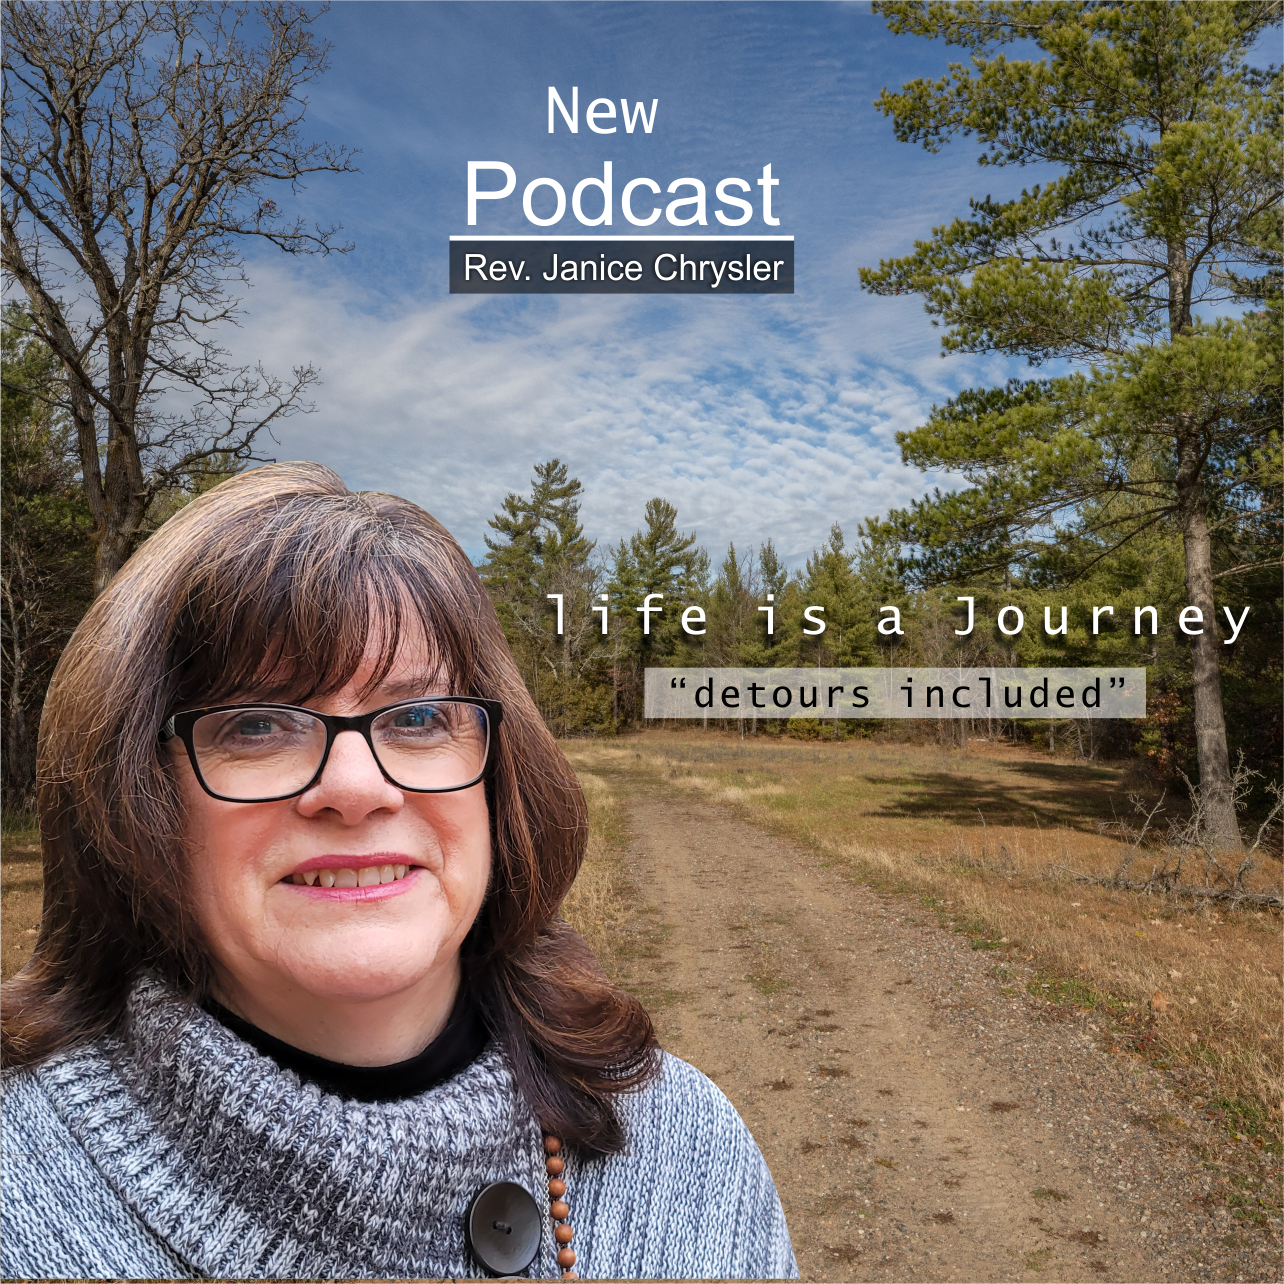 Rev. Janice's introduction to her new podcast